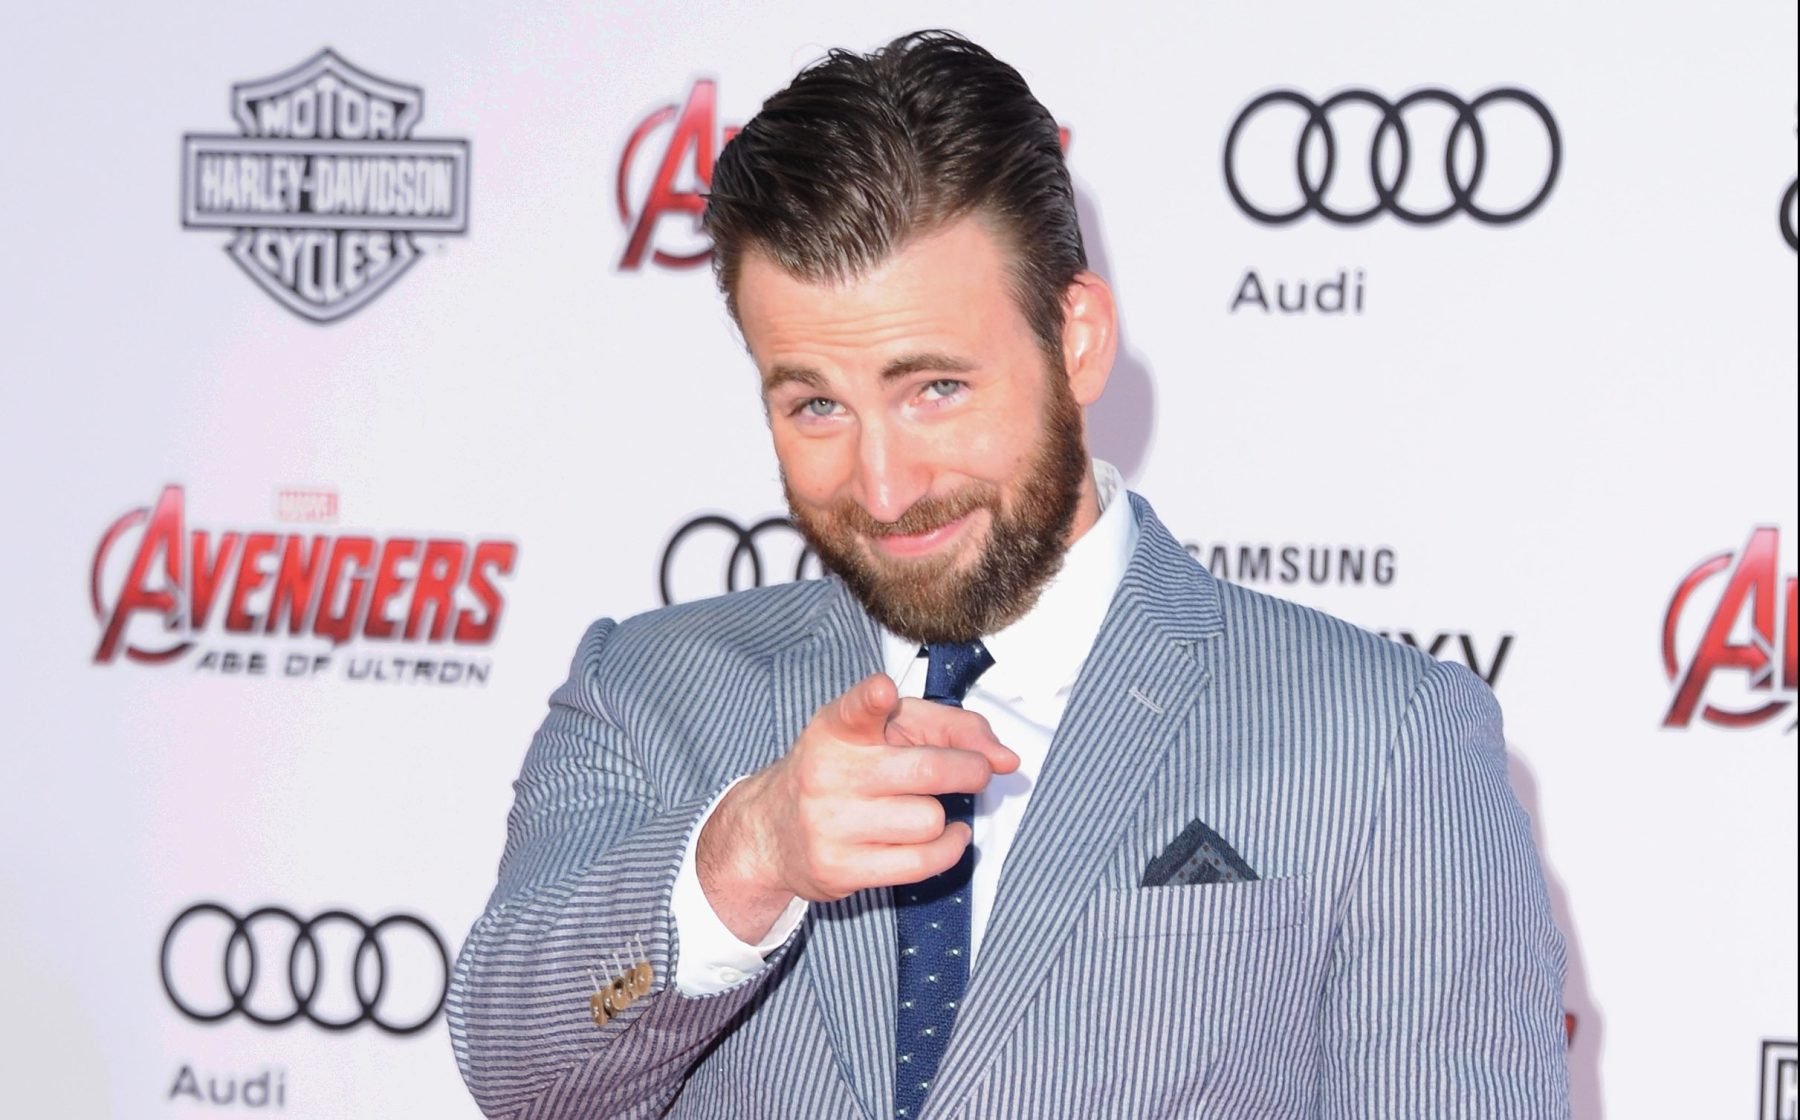 """Actor Chris Evans arrives at the Los Angeles Premiere Marvel's """"Avengers Age Of Ultron"""" at Dolby Theatre on April 13, 2015 in Hollywood, California.  (Photo by Jon Kopaloff/FilmMagic)"""